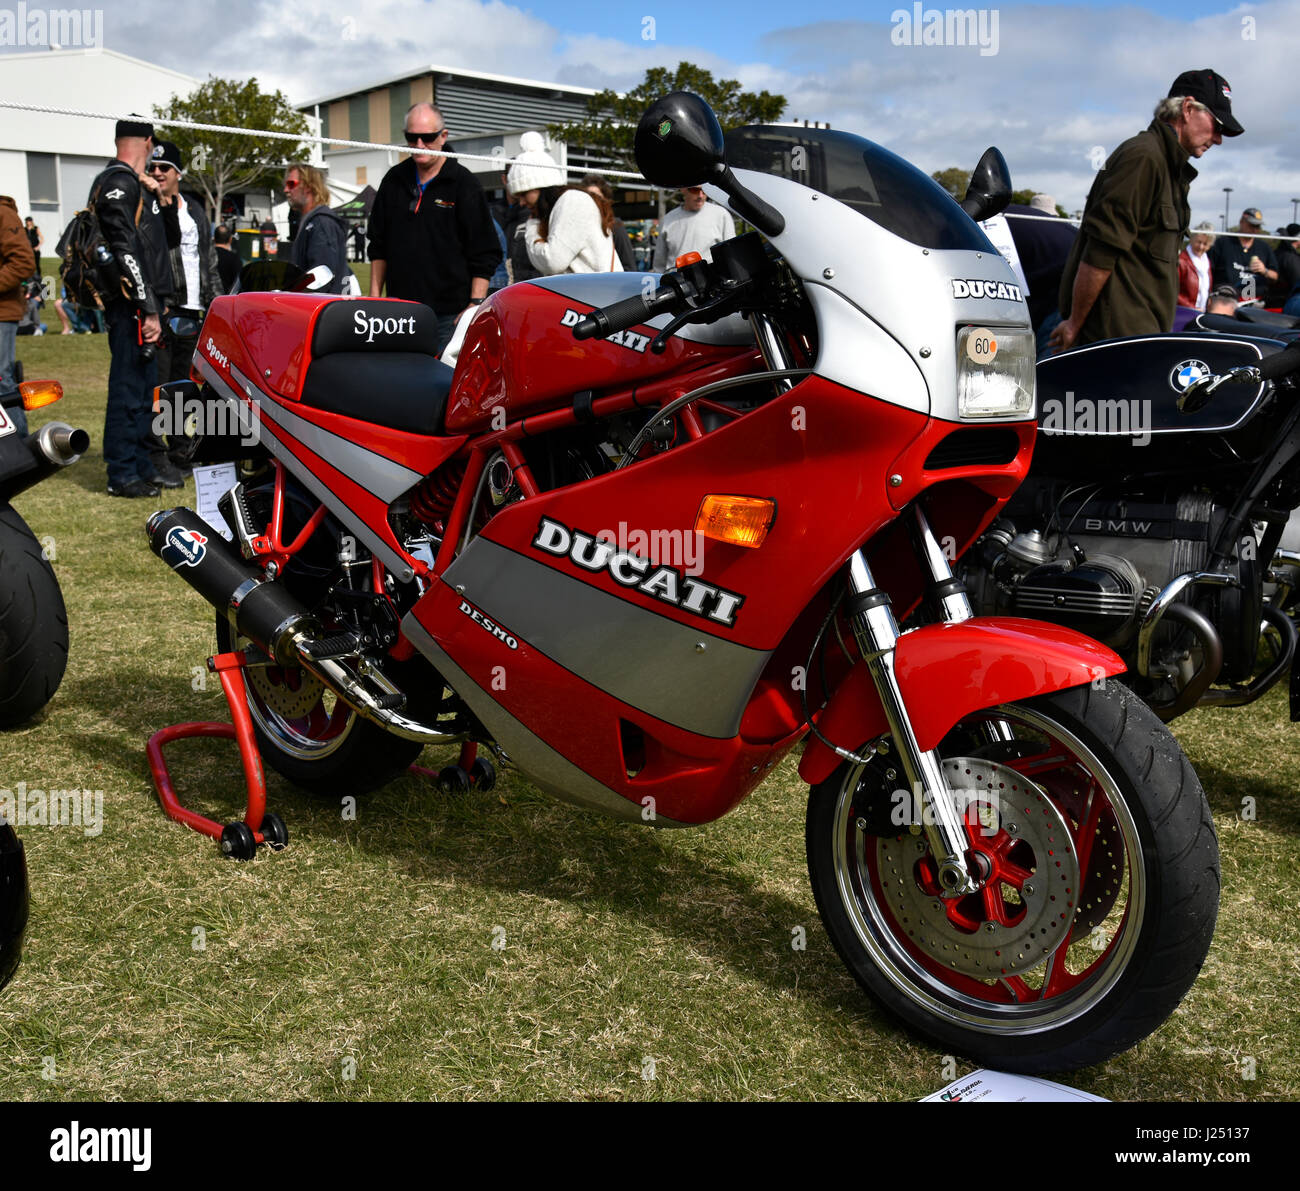 Desmo Stock Photos Images Alamy Ducati 750 Sport Wiring Diagram In Silver And Red Image